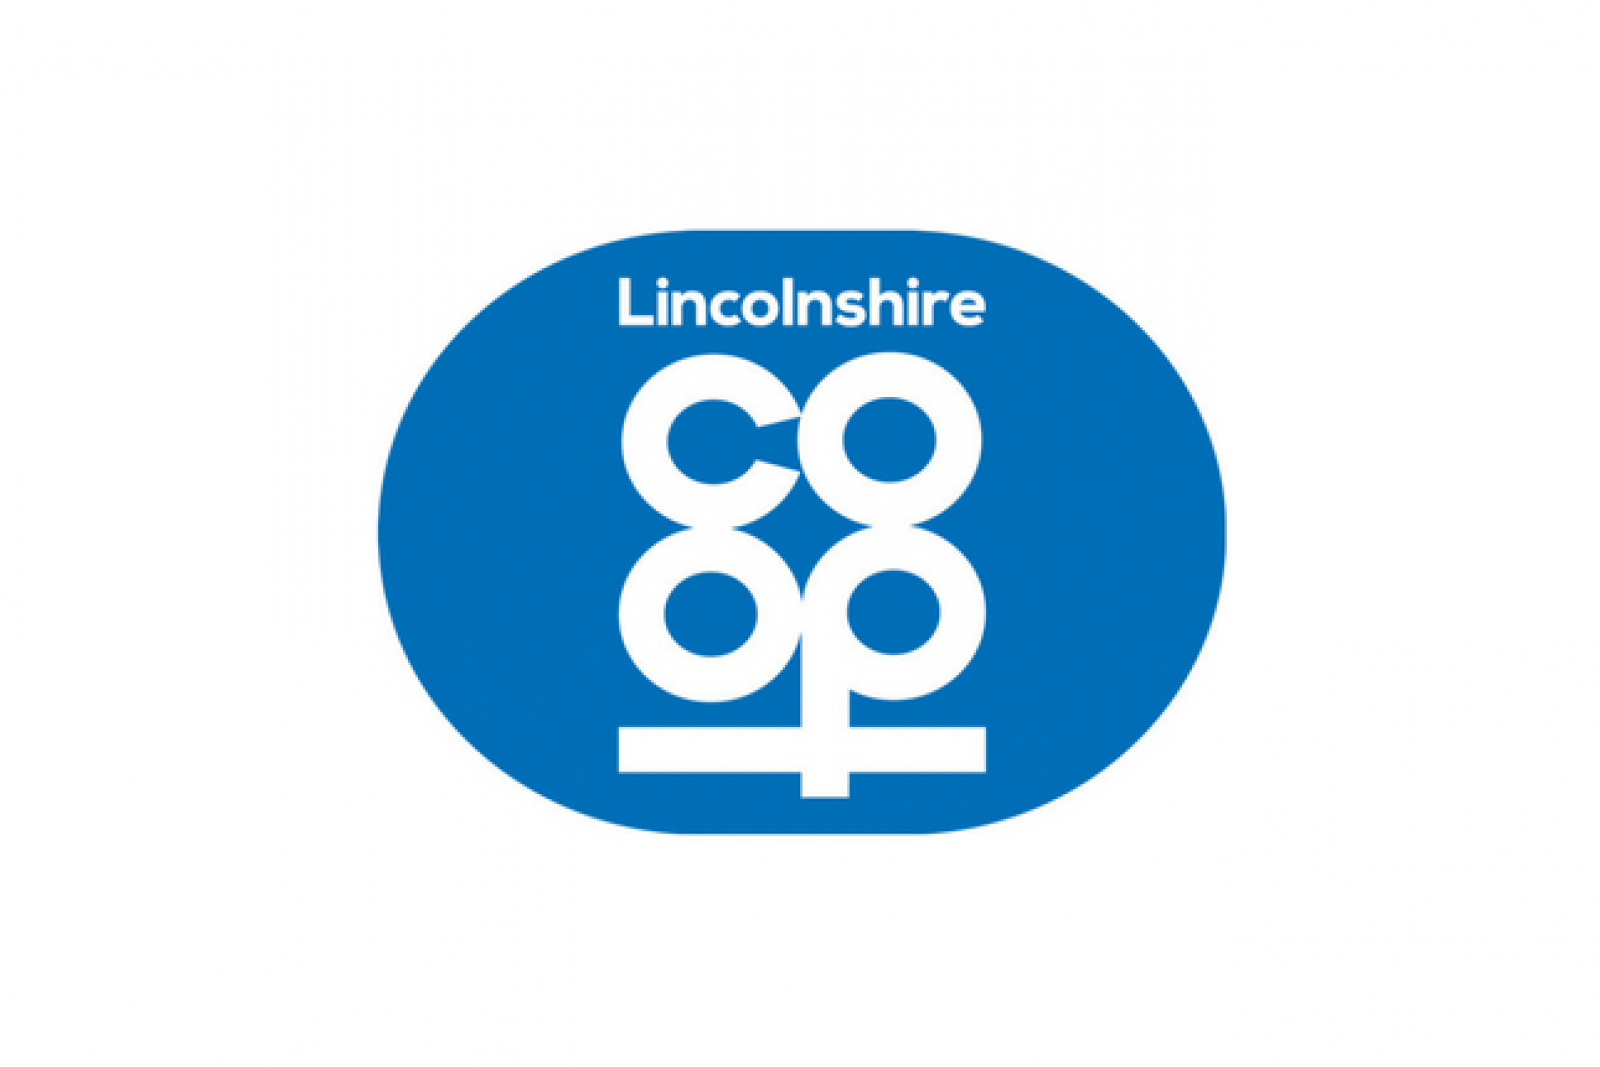 Lincolnshire Co-Operative Travel (Worldchoice)